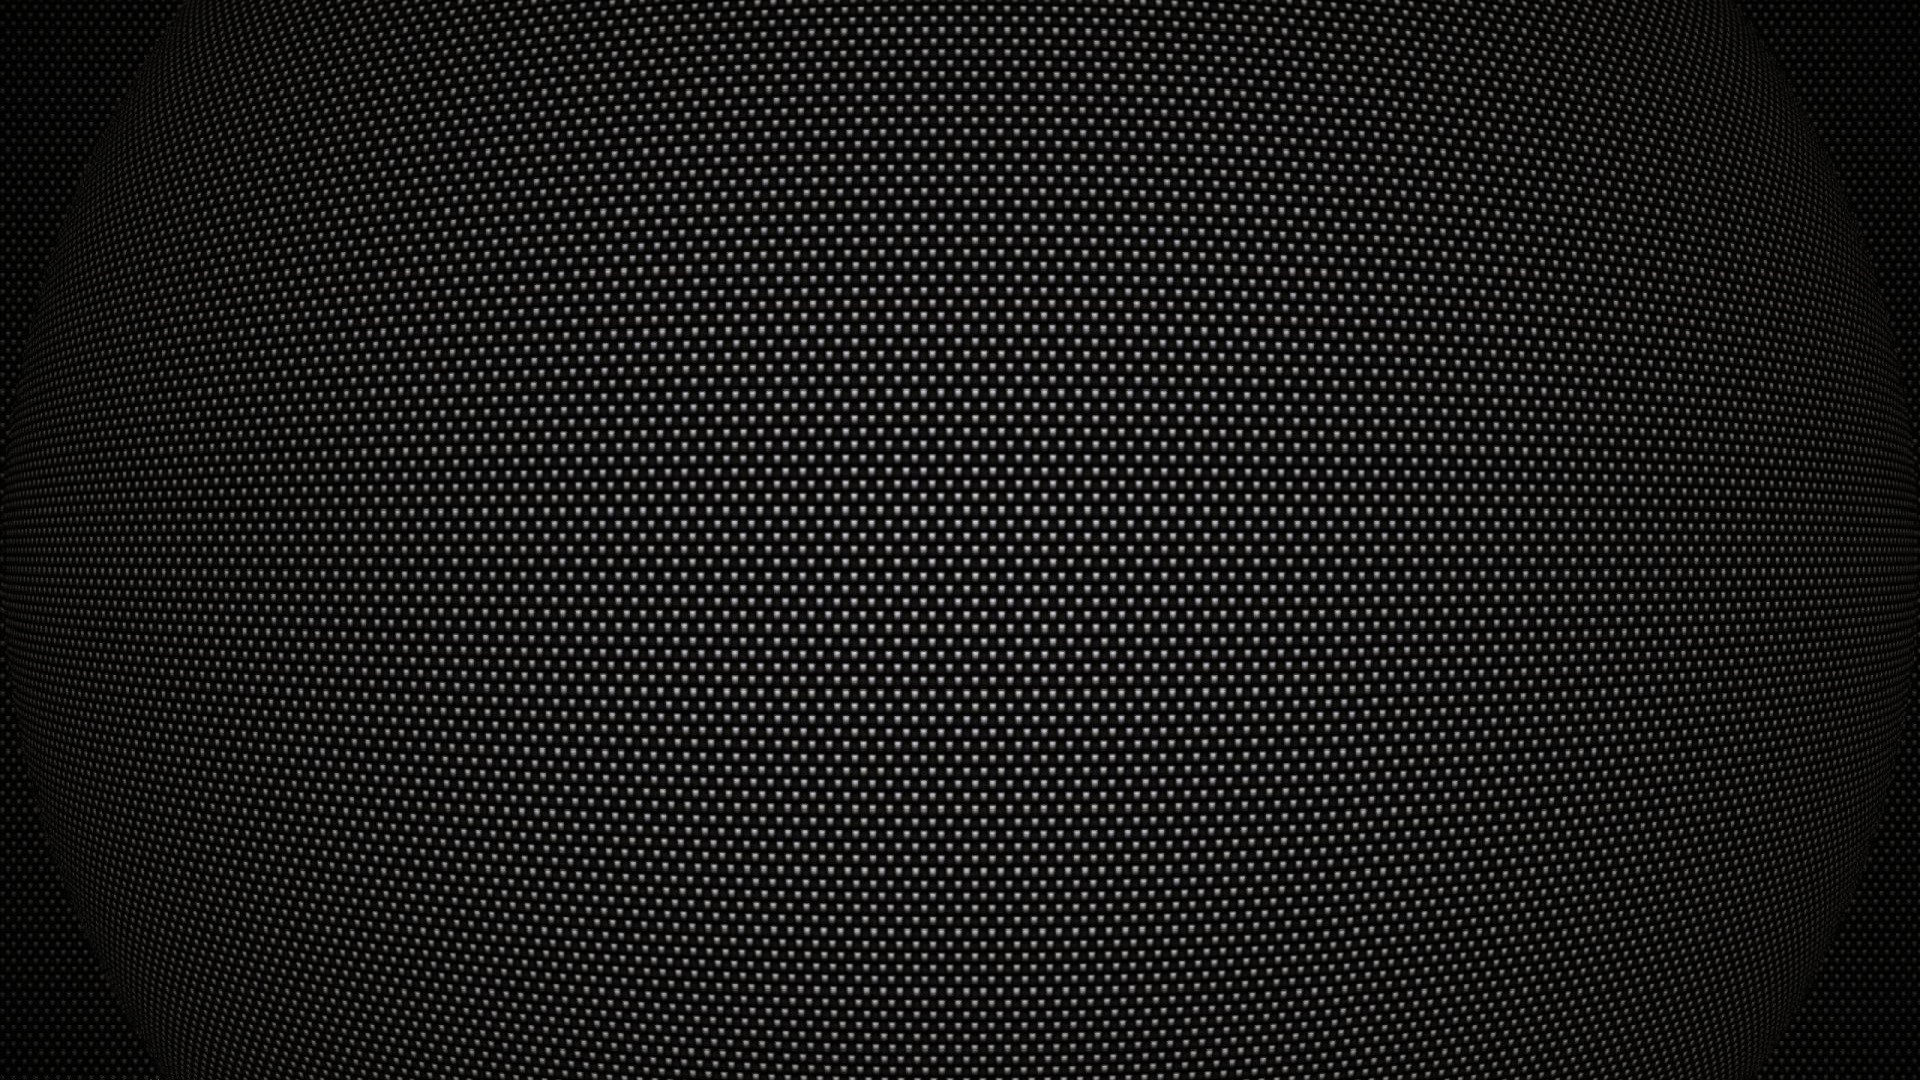 Solid Black Wallpaper 1920x1080 ·① WallpaperTag